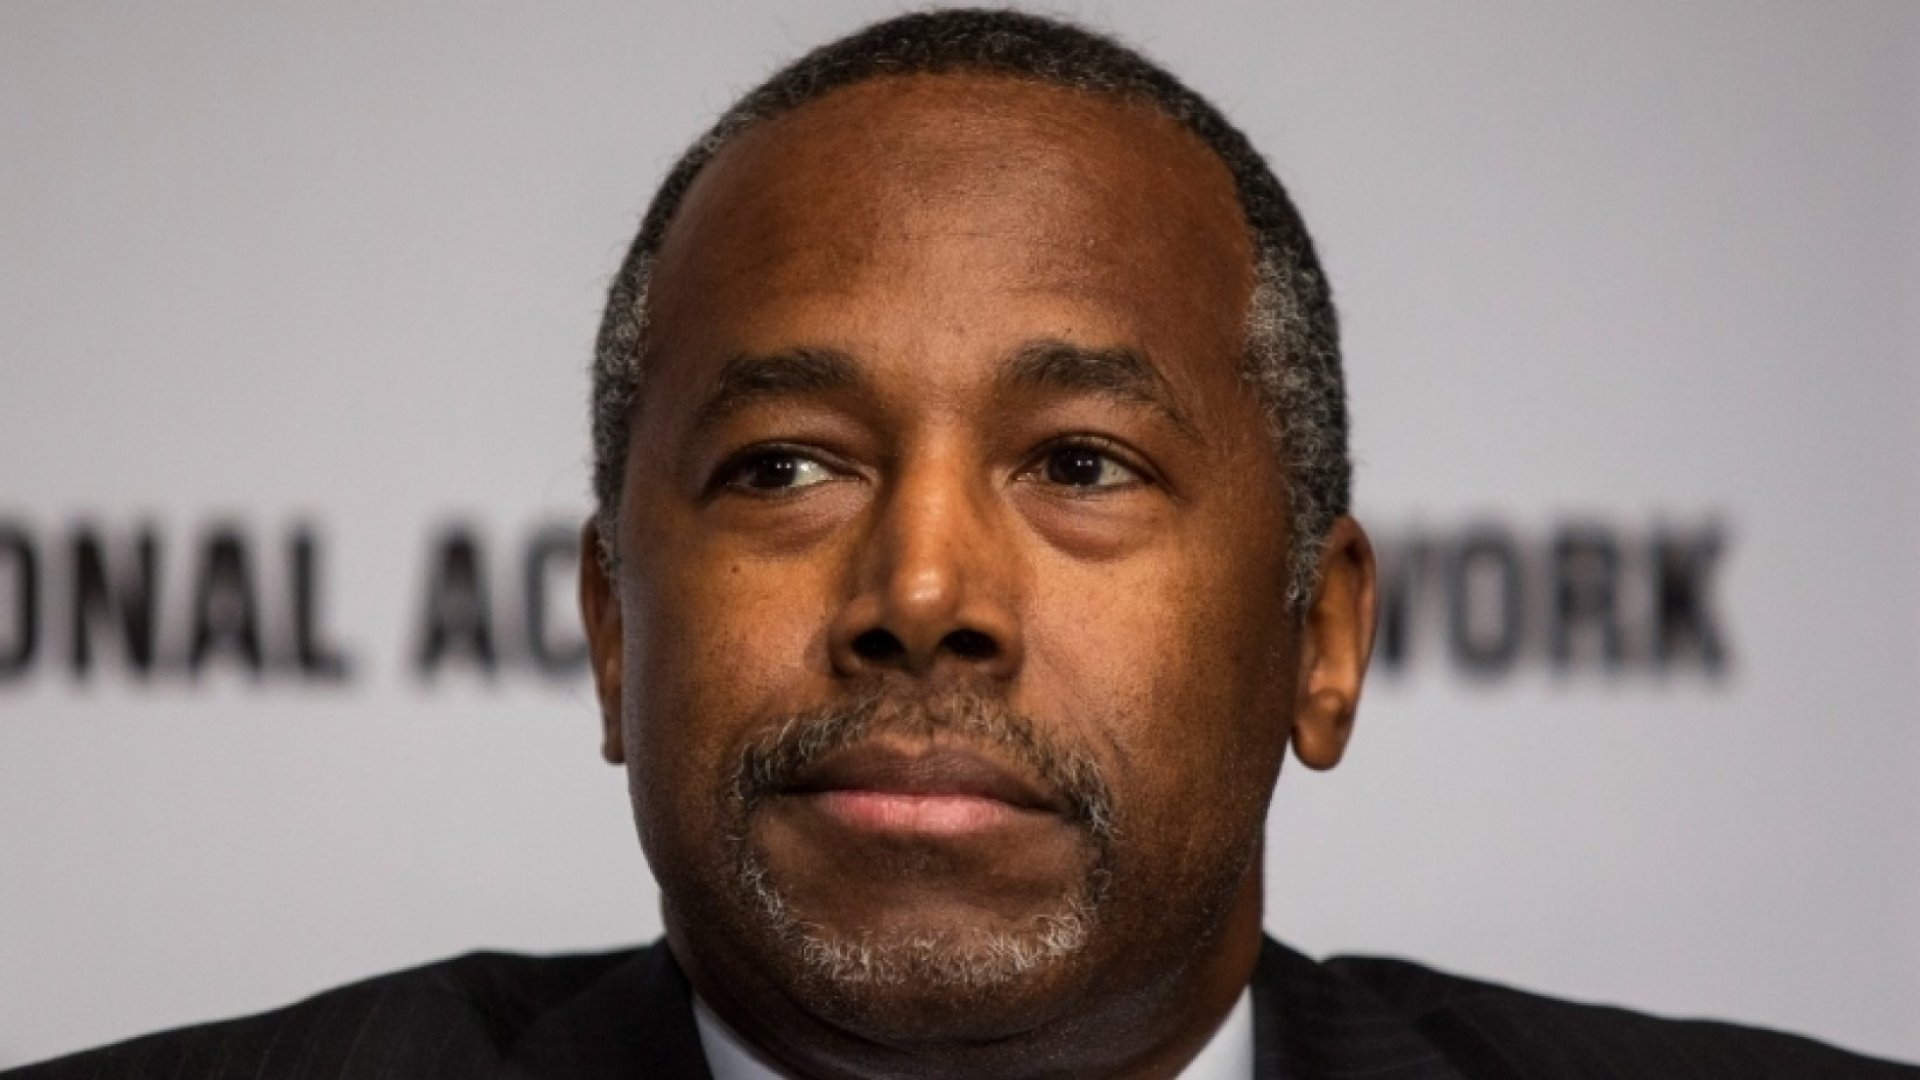 Hey, Ben Carson, Remember This: When Shaping Your Story, It Better Be True